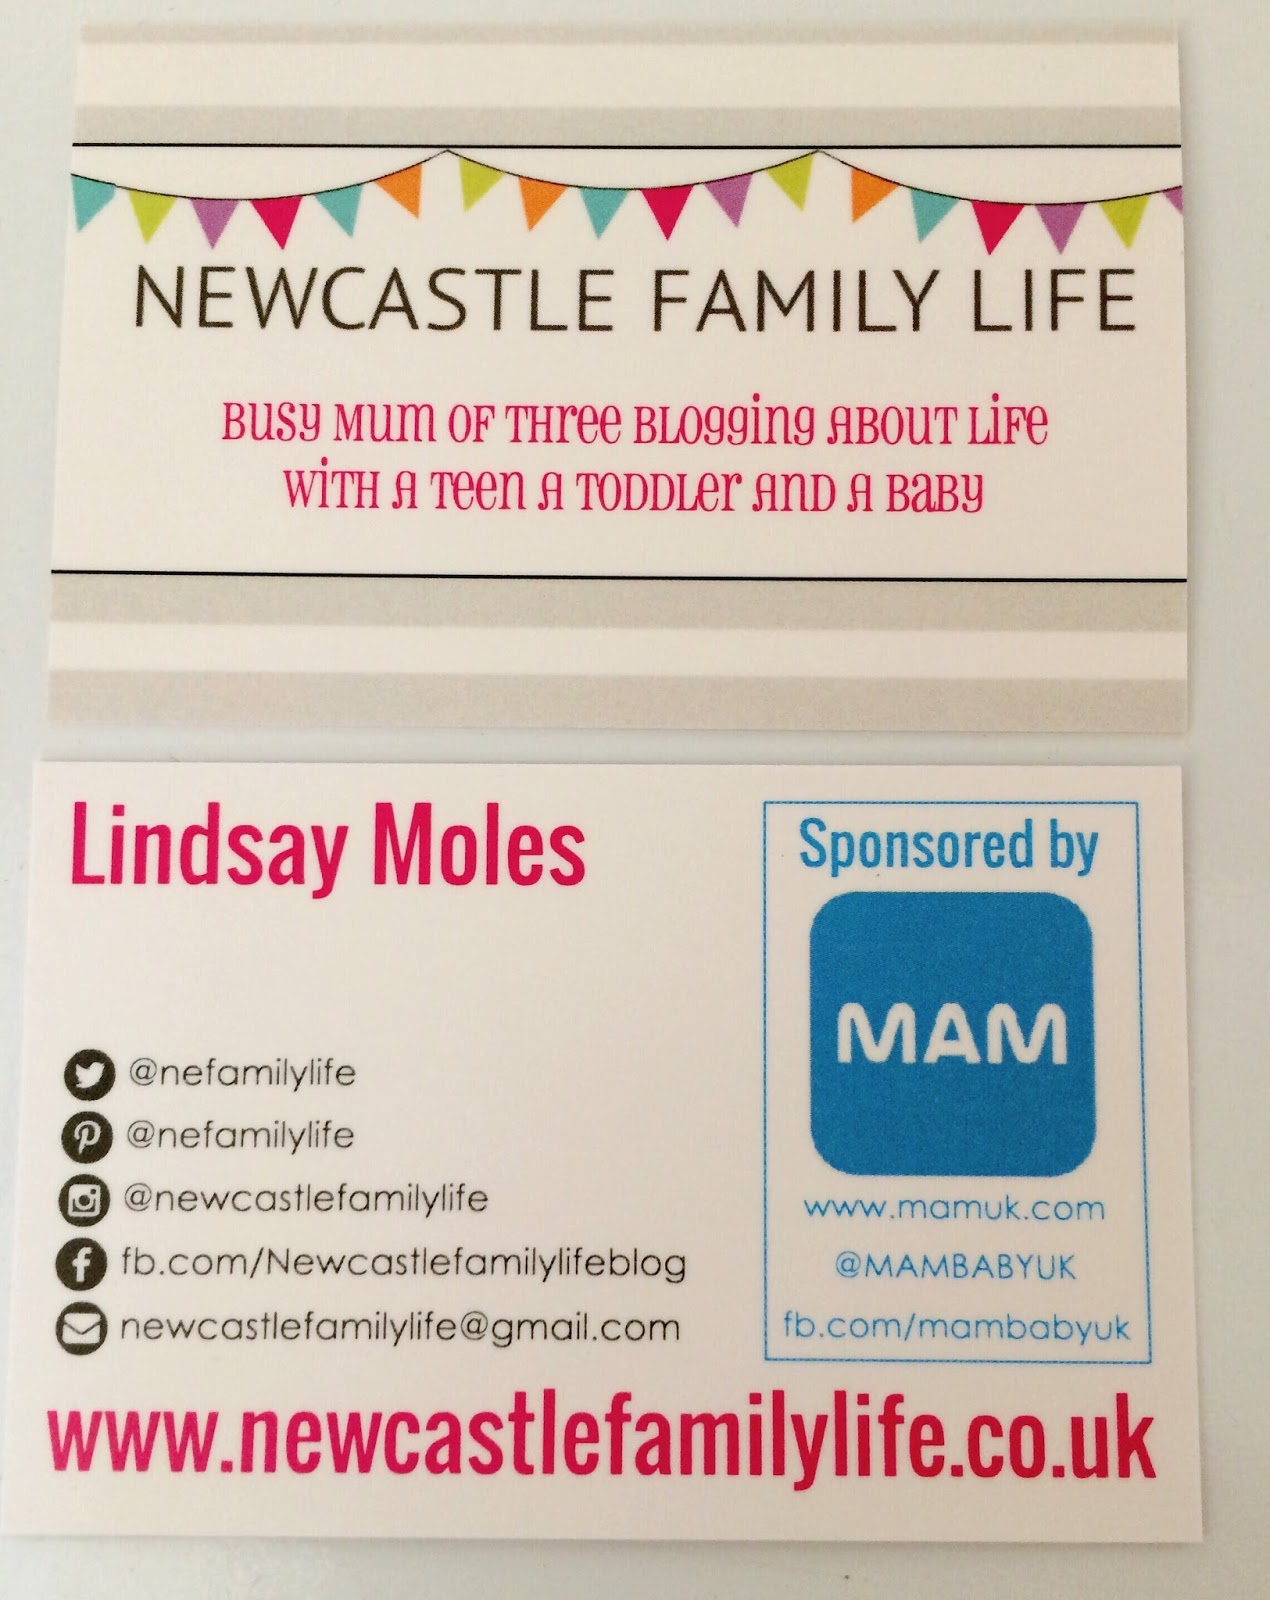 Newcastle Family Life Blog Business Cards From StressFreePrint